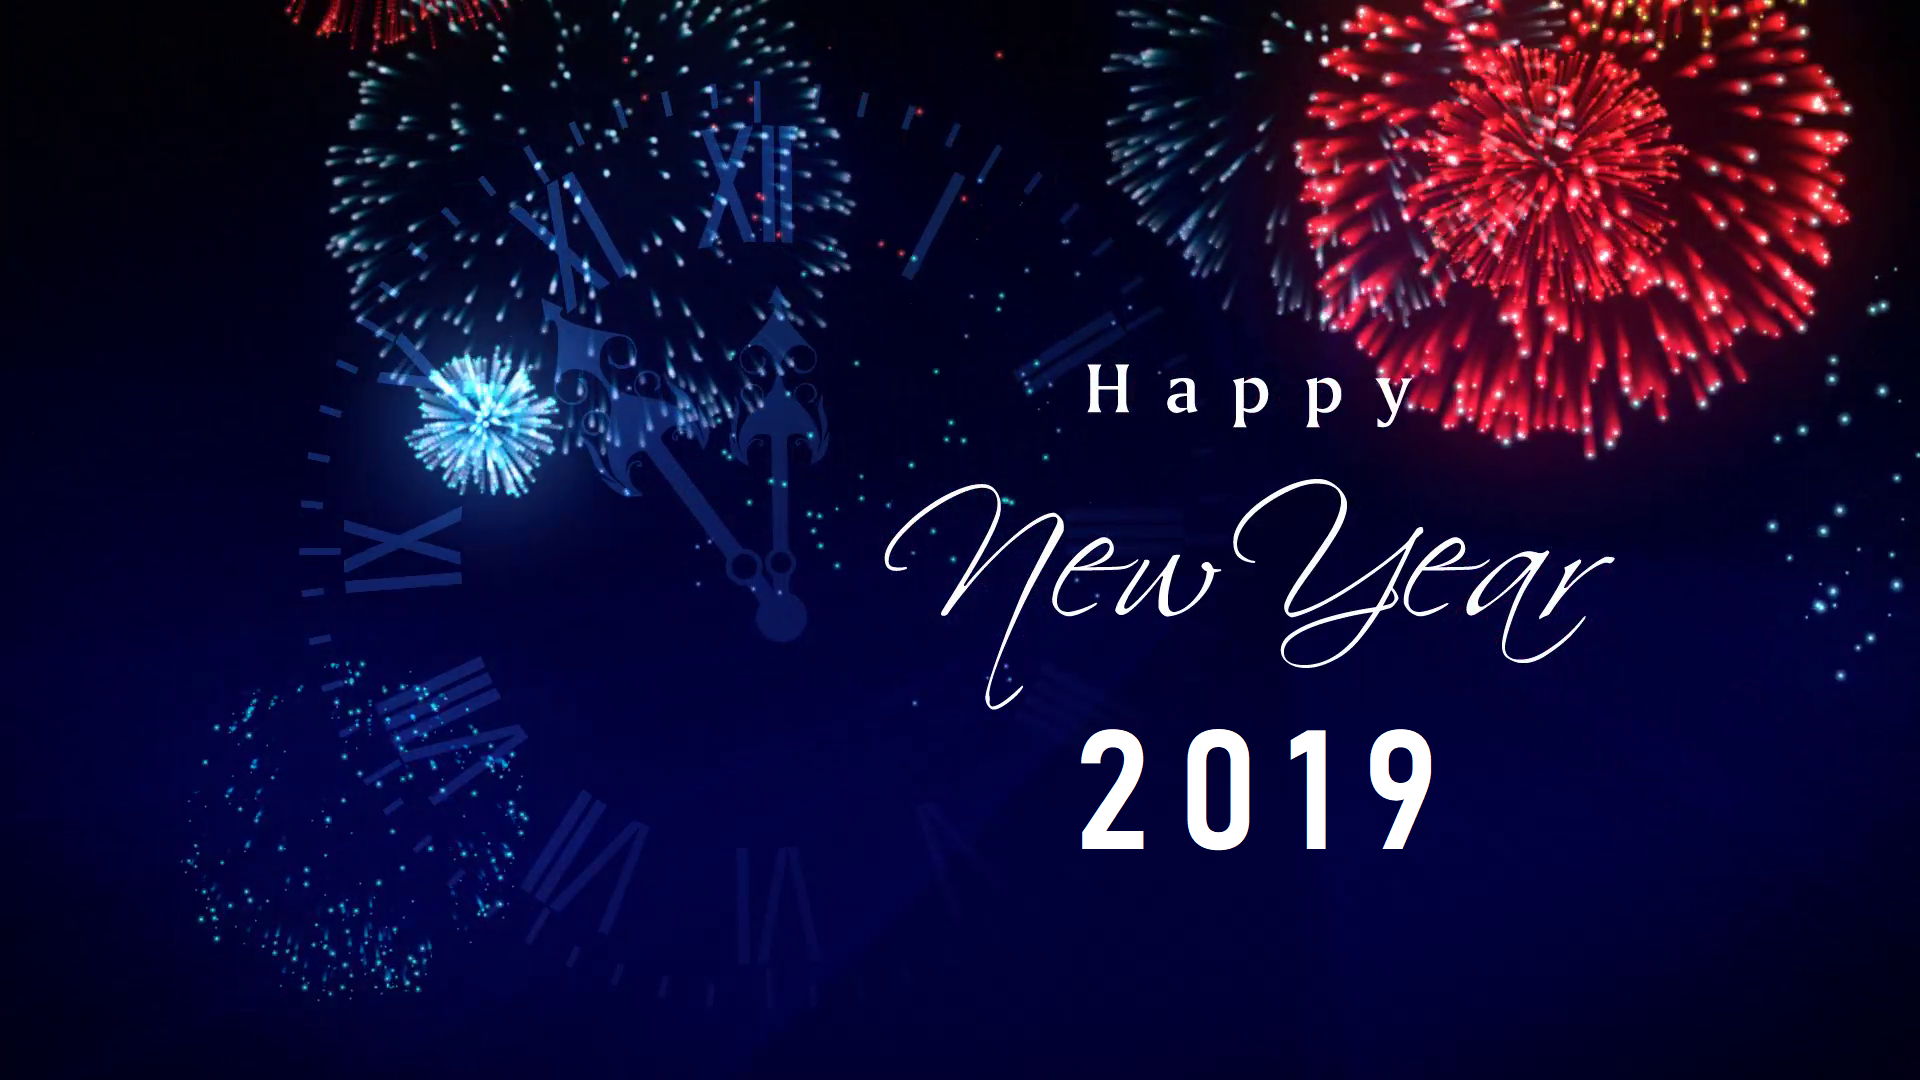 New Year 2019 HD Wallpaper  Background Image  1920x1080  ID